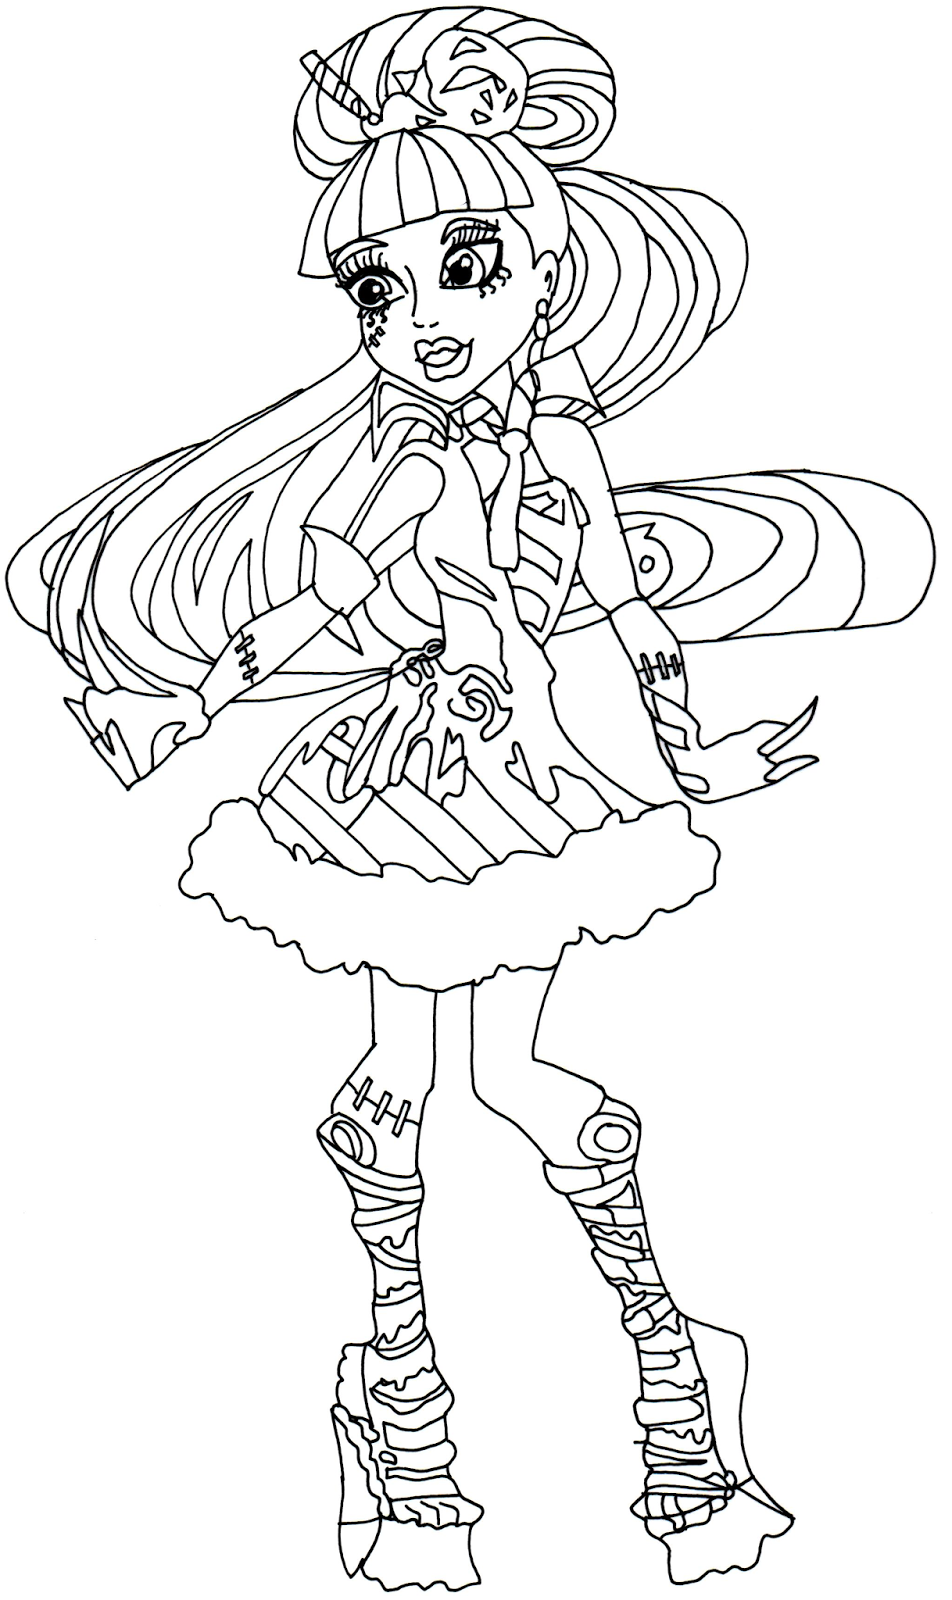 monster high frankie stein coloring pages - free printable monster high coloring pages january 2014